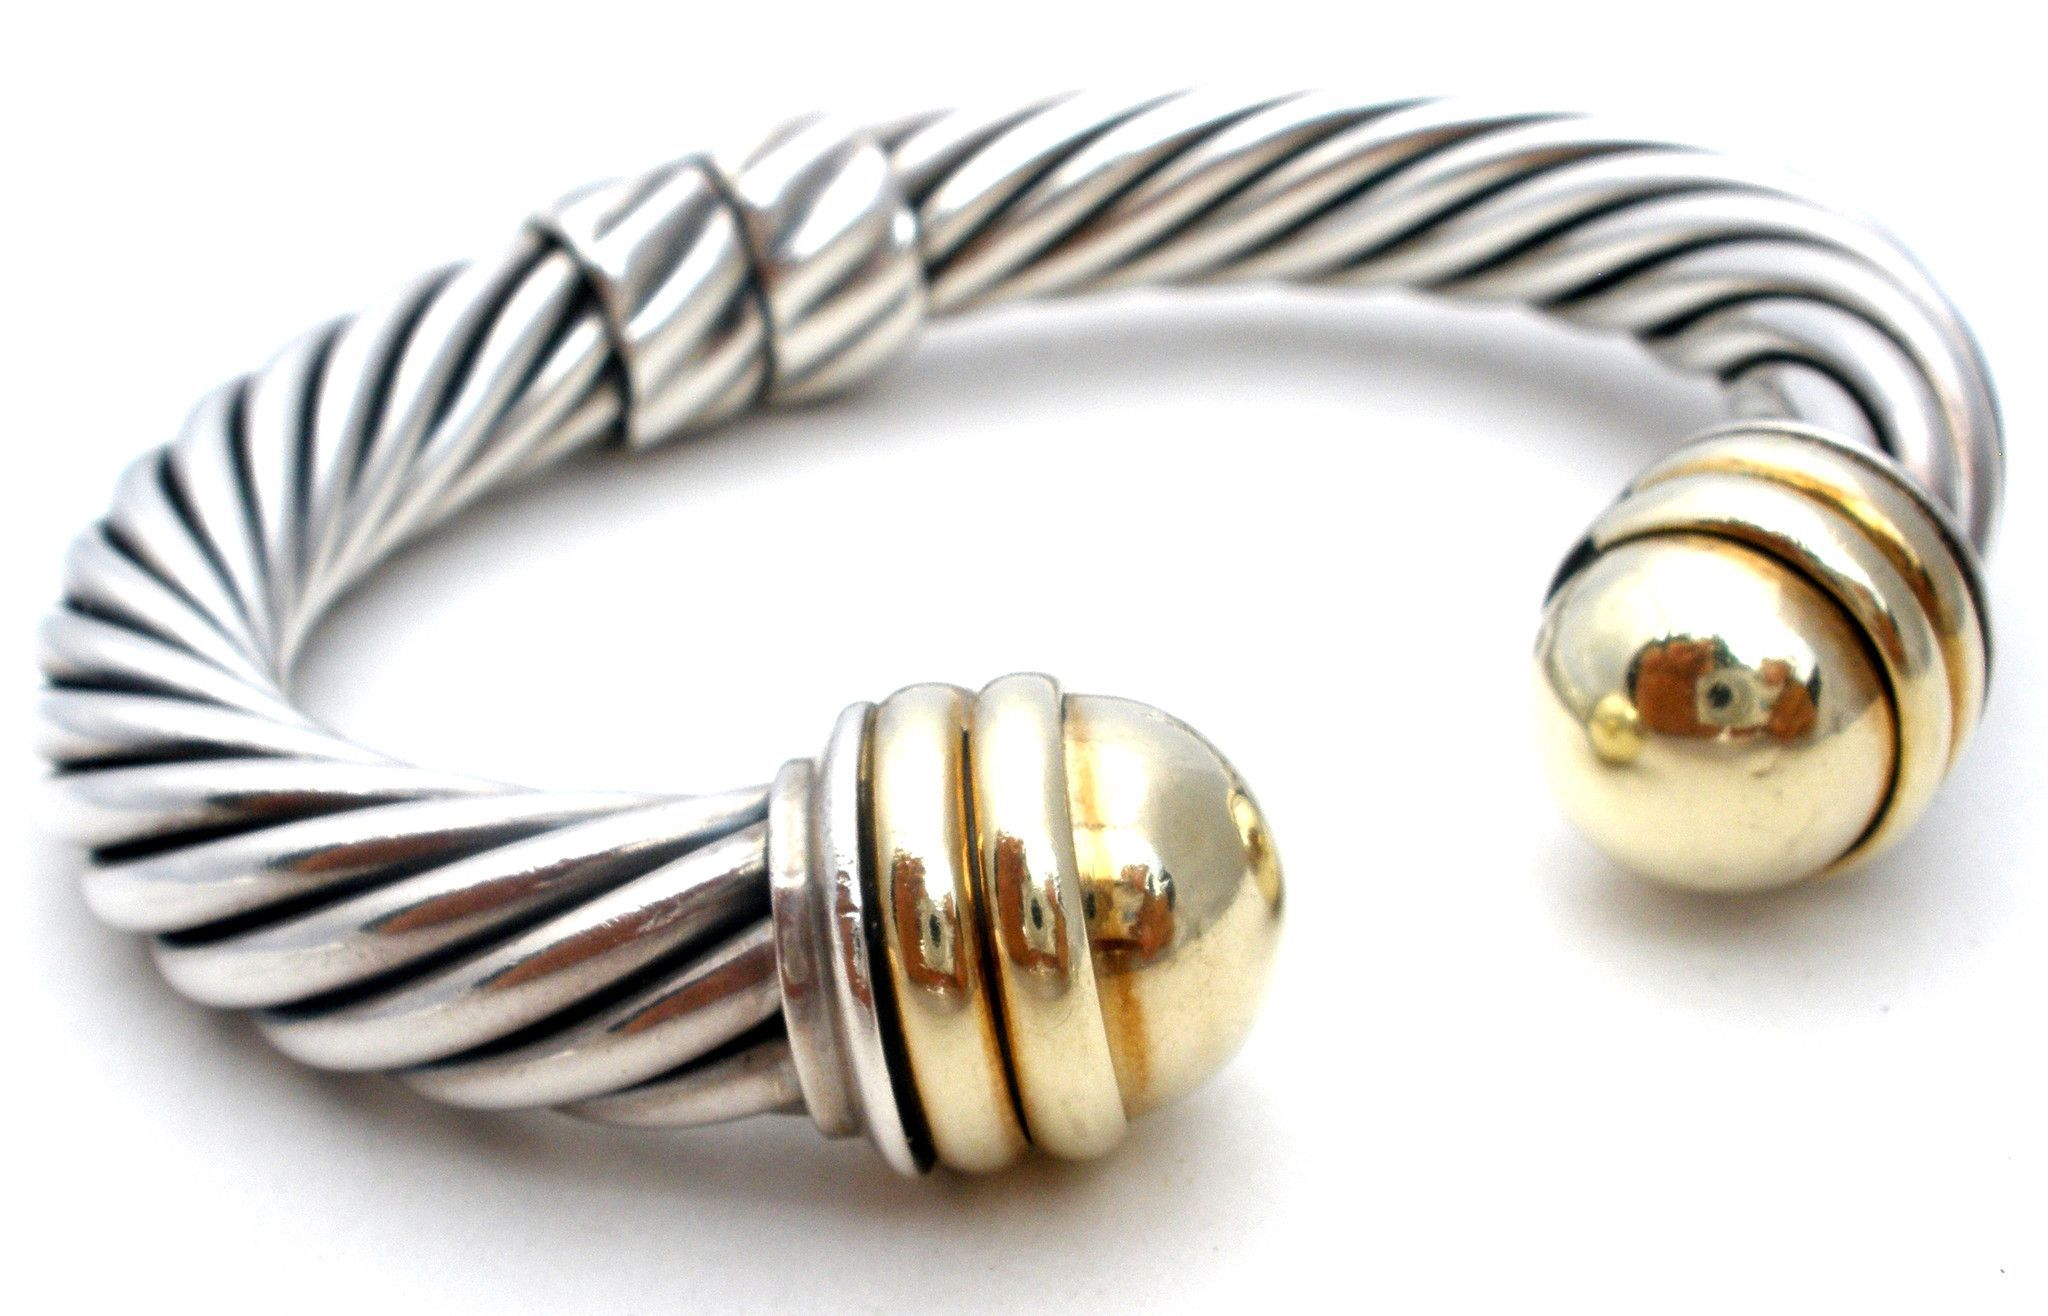 High End Designer Jewelry Bracelets This Is A Sterling Silver Hinged Clic Cable Cuff Bracelet With 14k Gold Domes By David Yurman